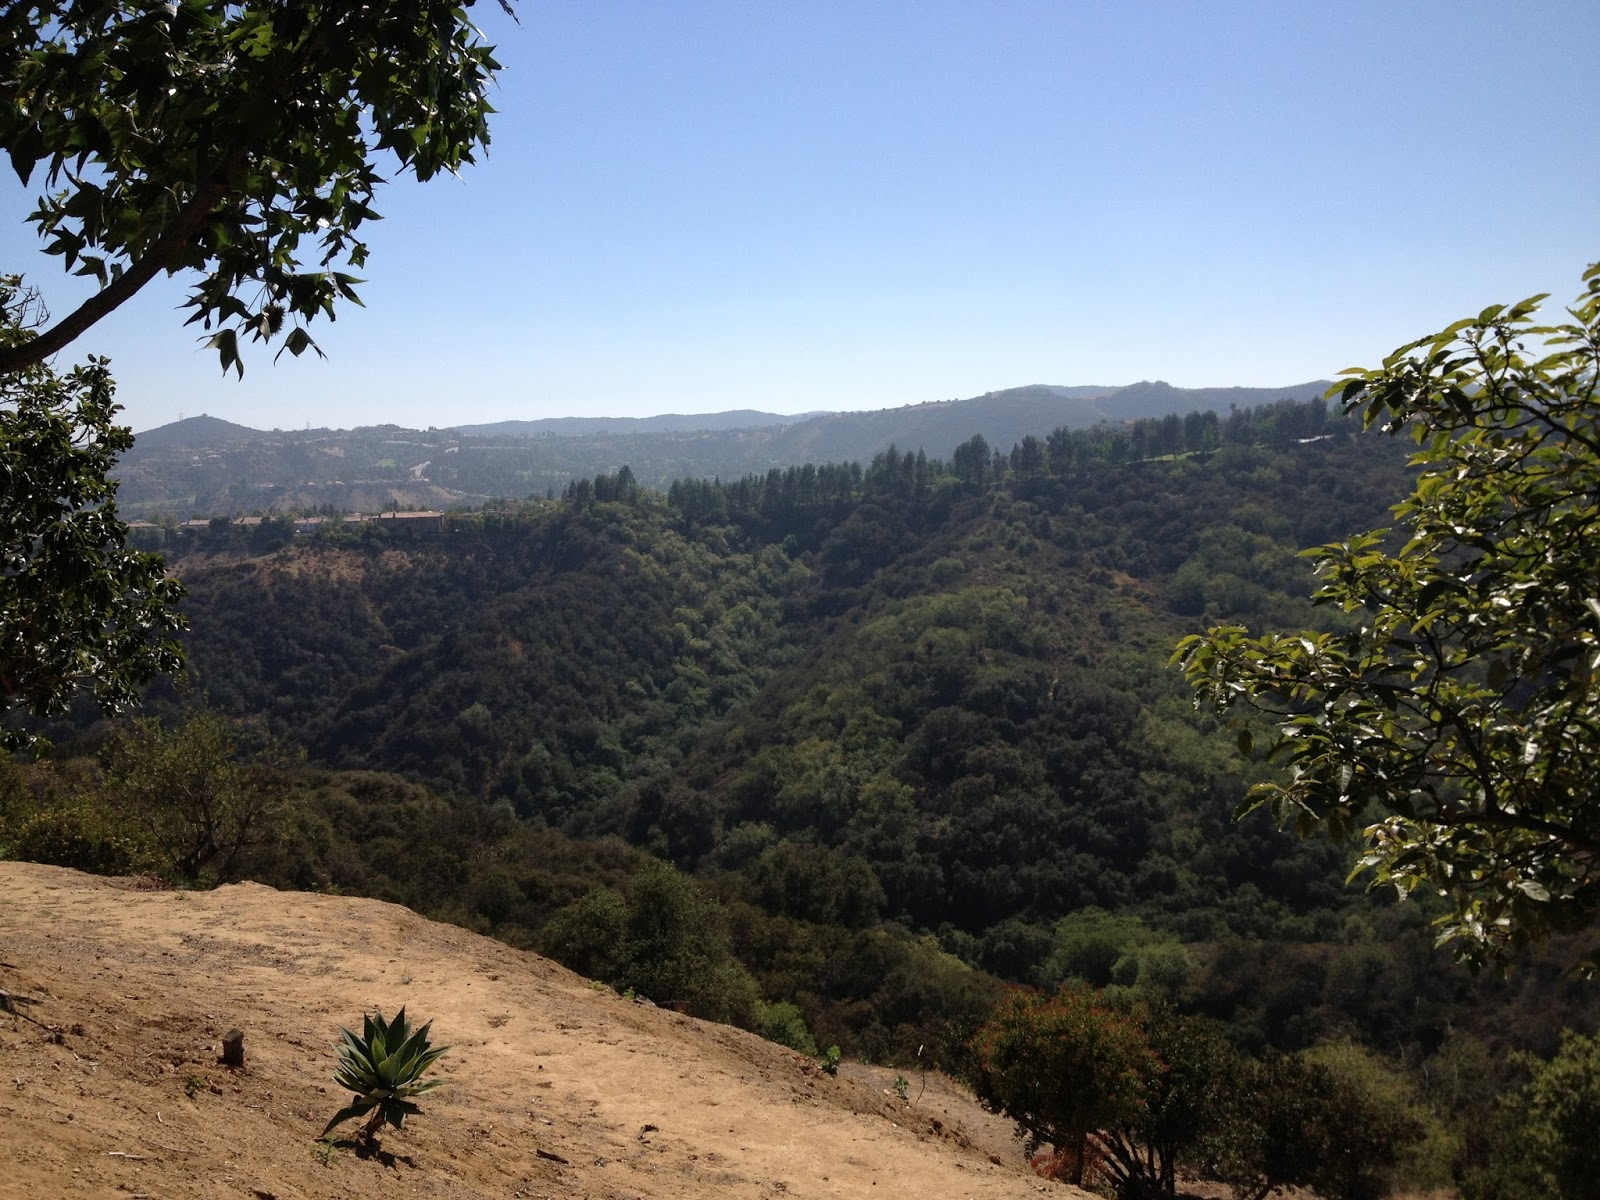 View from Mulholland Drive by Rachel Medanic